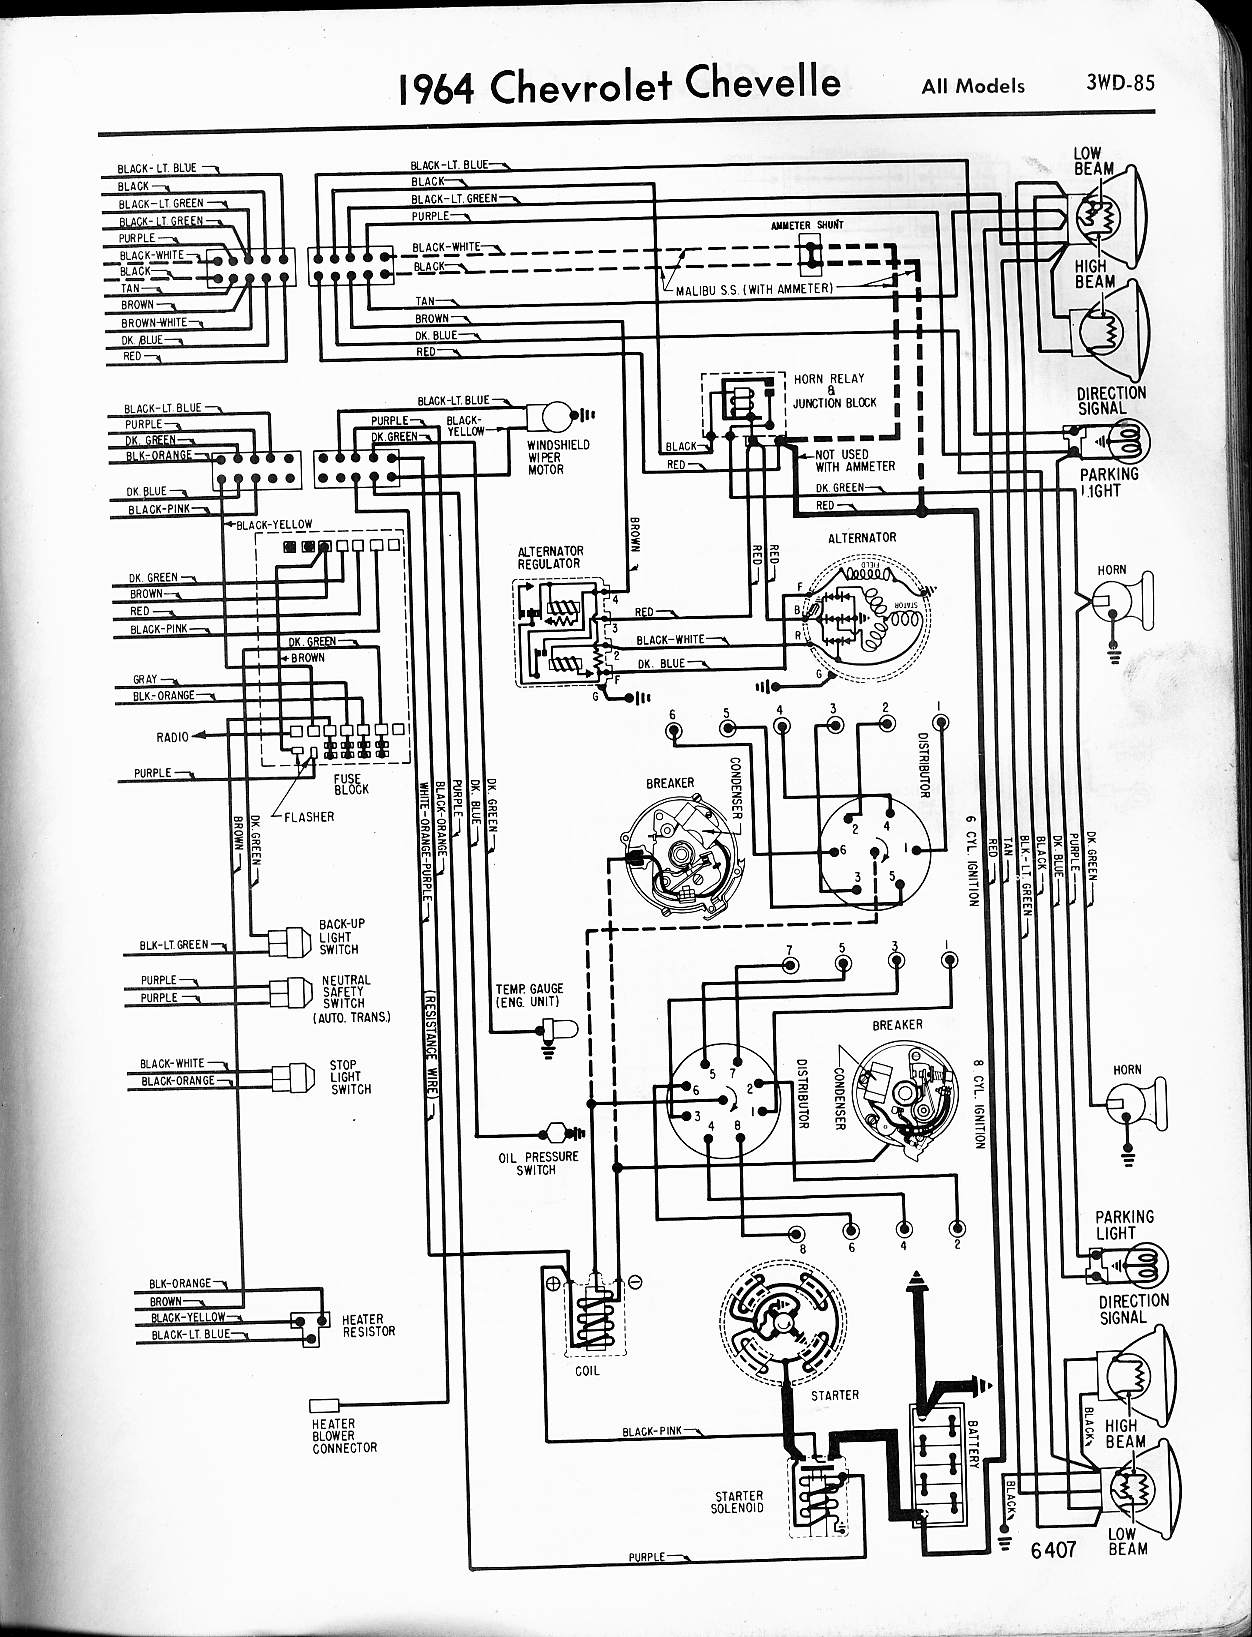 64 chevy wiring harness diagram data wiring diagram today Chevy Truck Wiring Harness Standard 57 65 chevy wiring diagrams 77 chevy wiring diagram 64 chevy wiring harness diagram